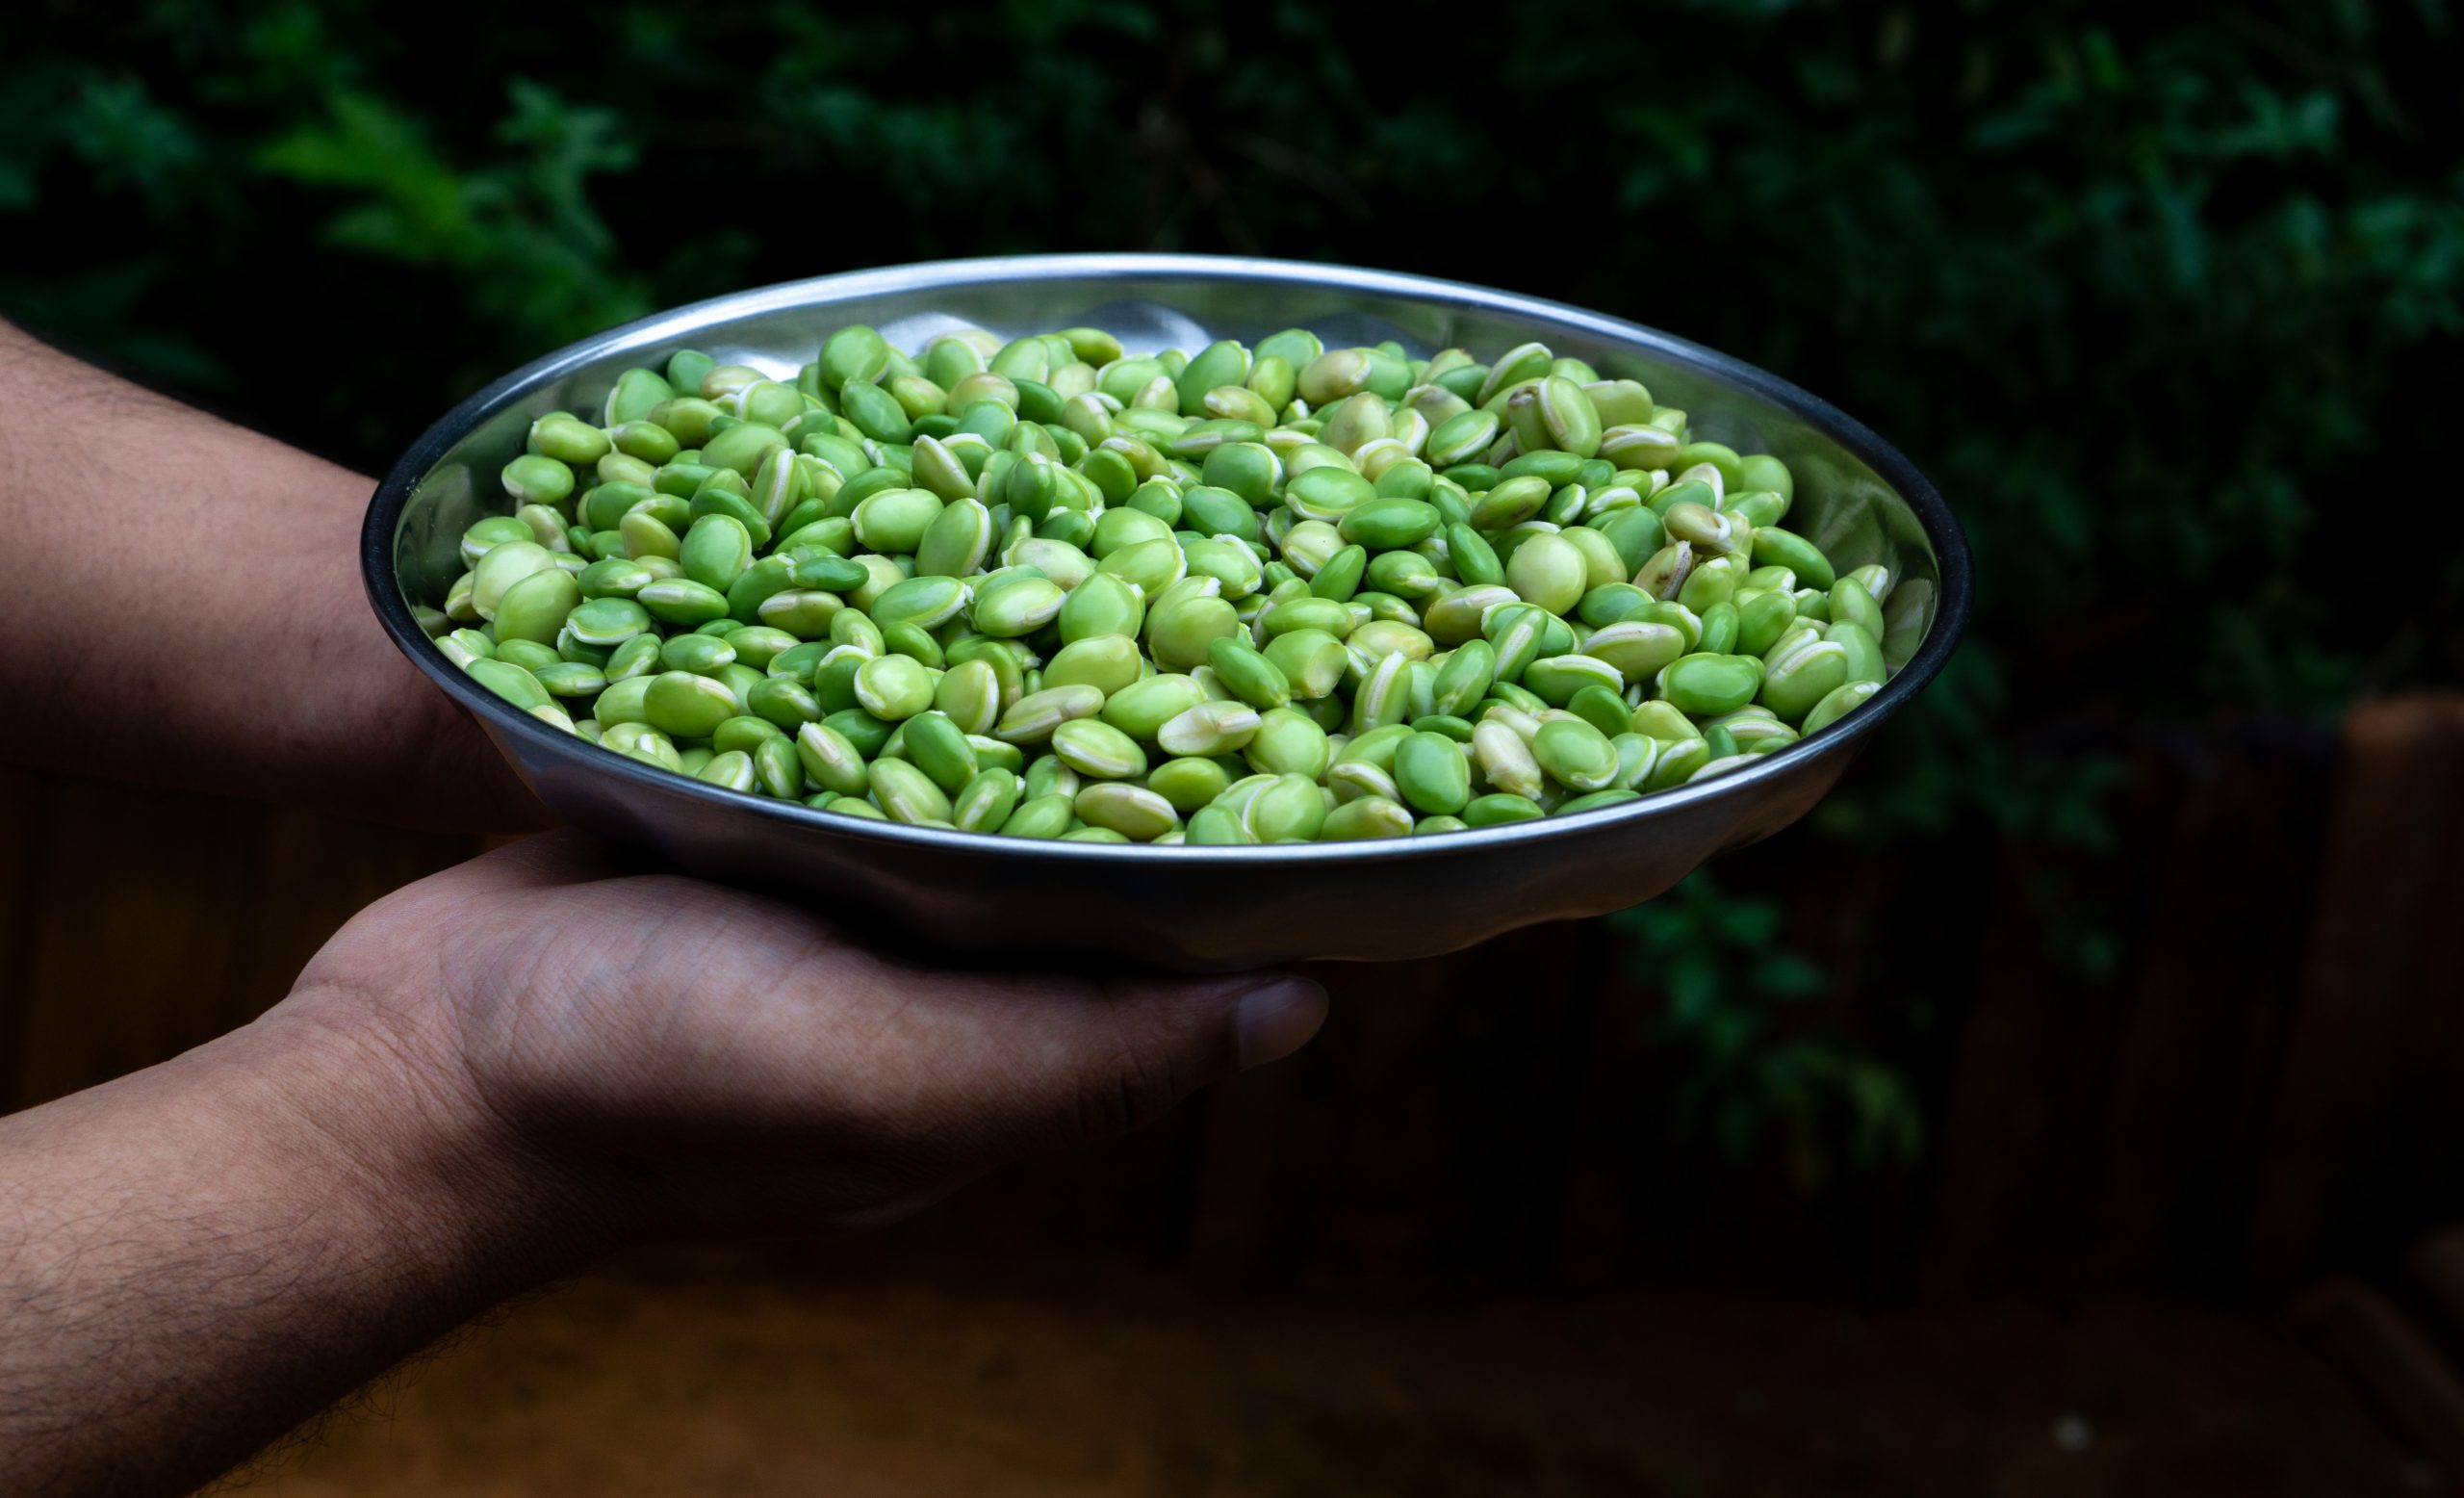 Human hands holding a plate of lima beans